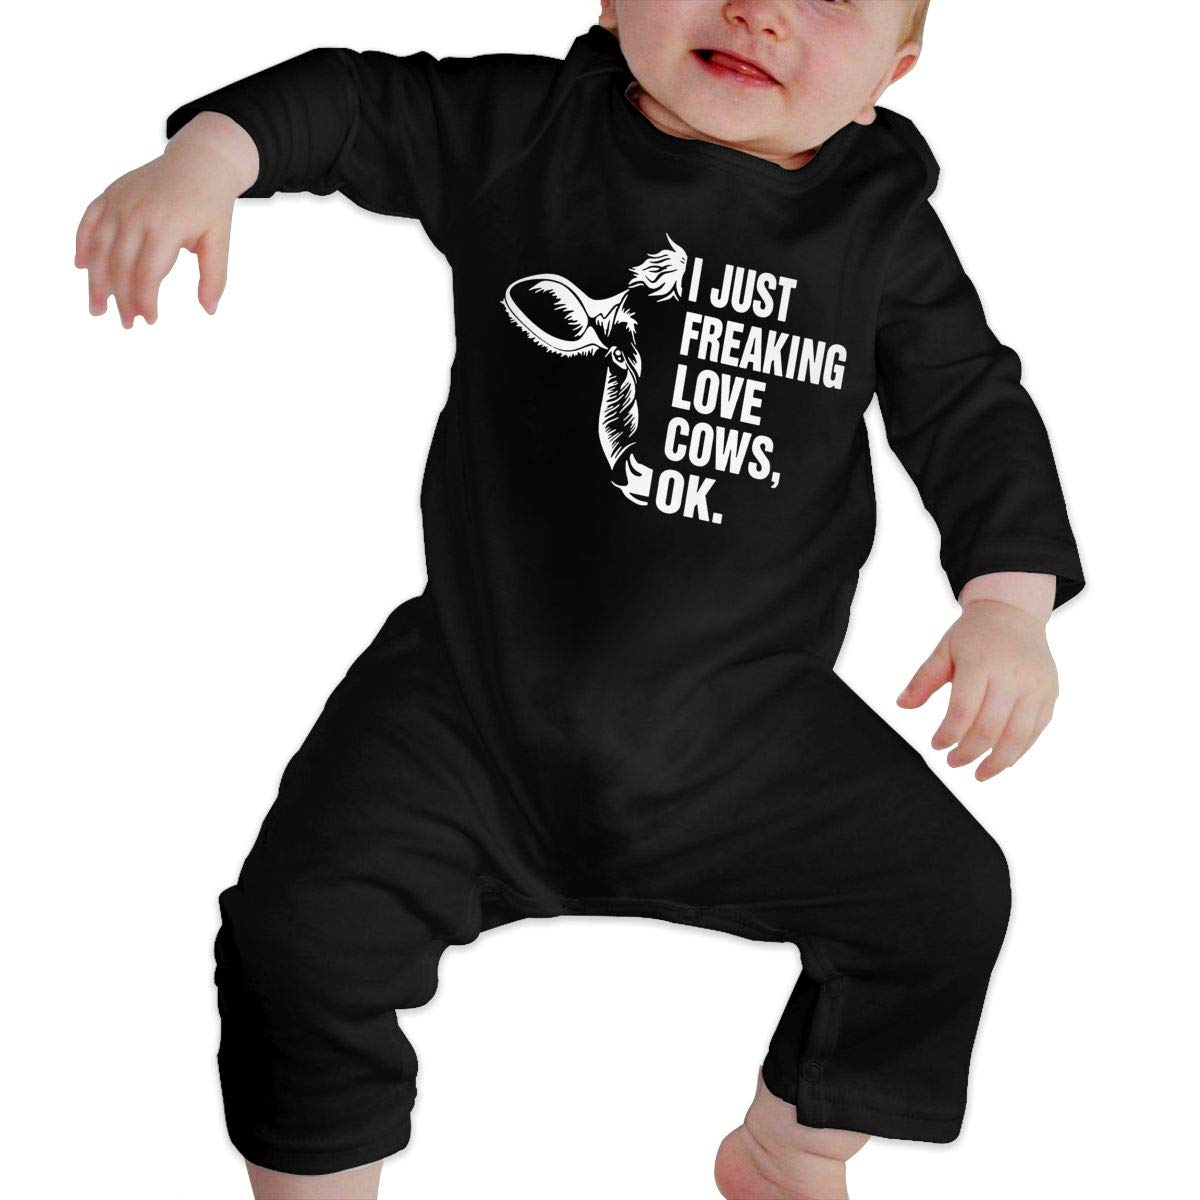 Ok Newborn Baby Bodysuit Long Sleeve Overalls Outfits Clothes Romper Jumpsuit for Baby Boy Girl I Just Freaking Love Cows